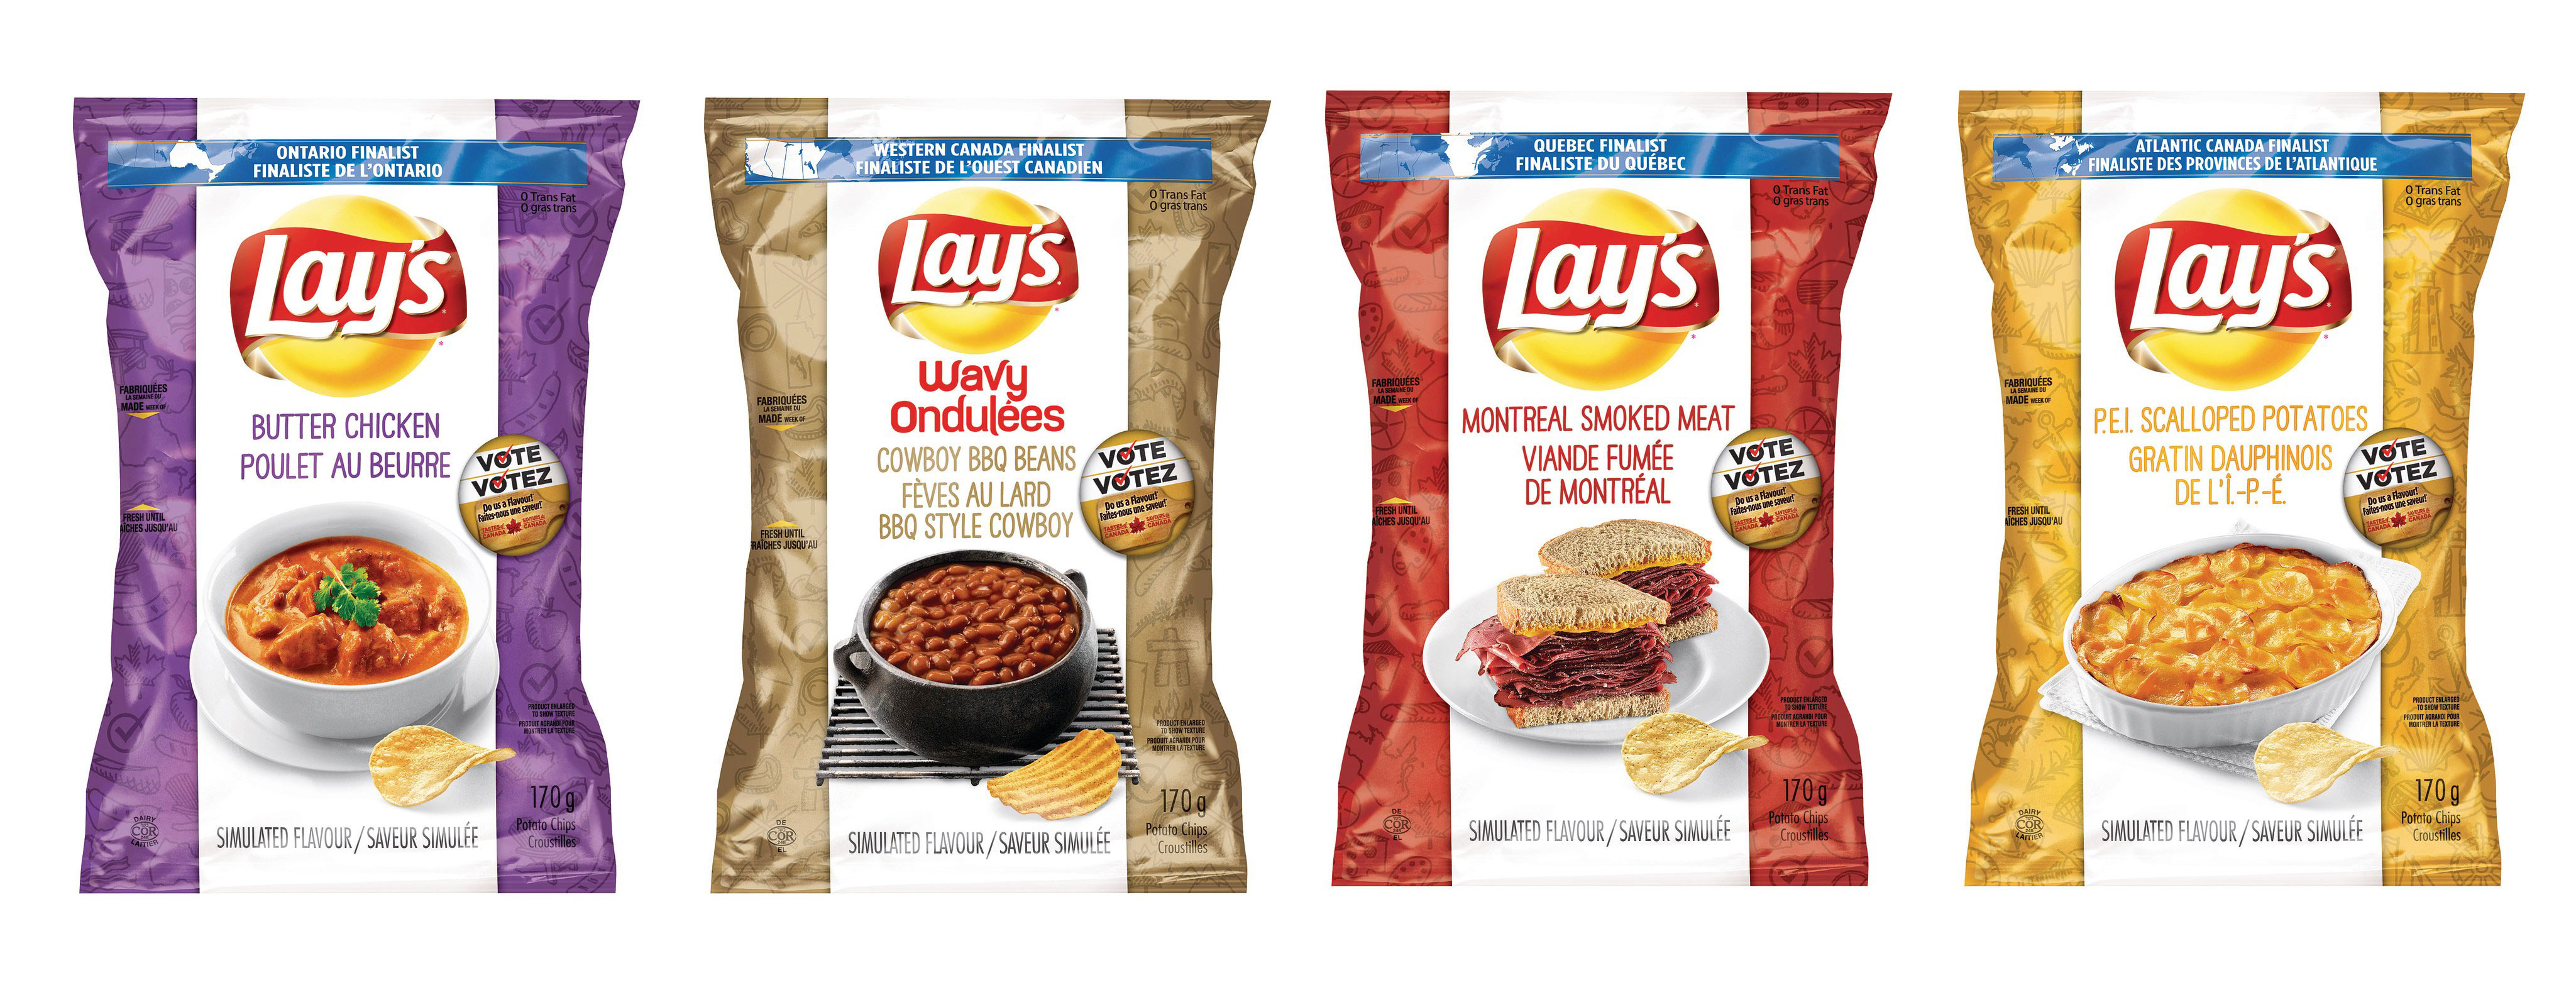 What potato chip flavour should have made Lay's finalist list?